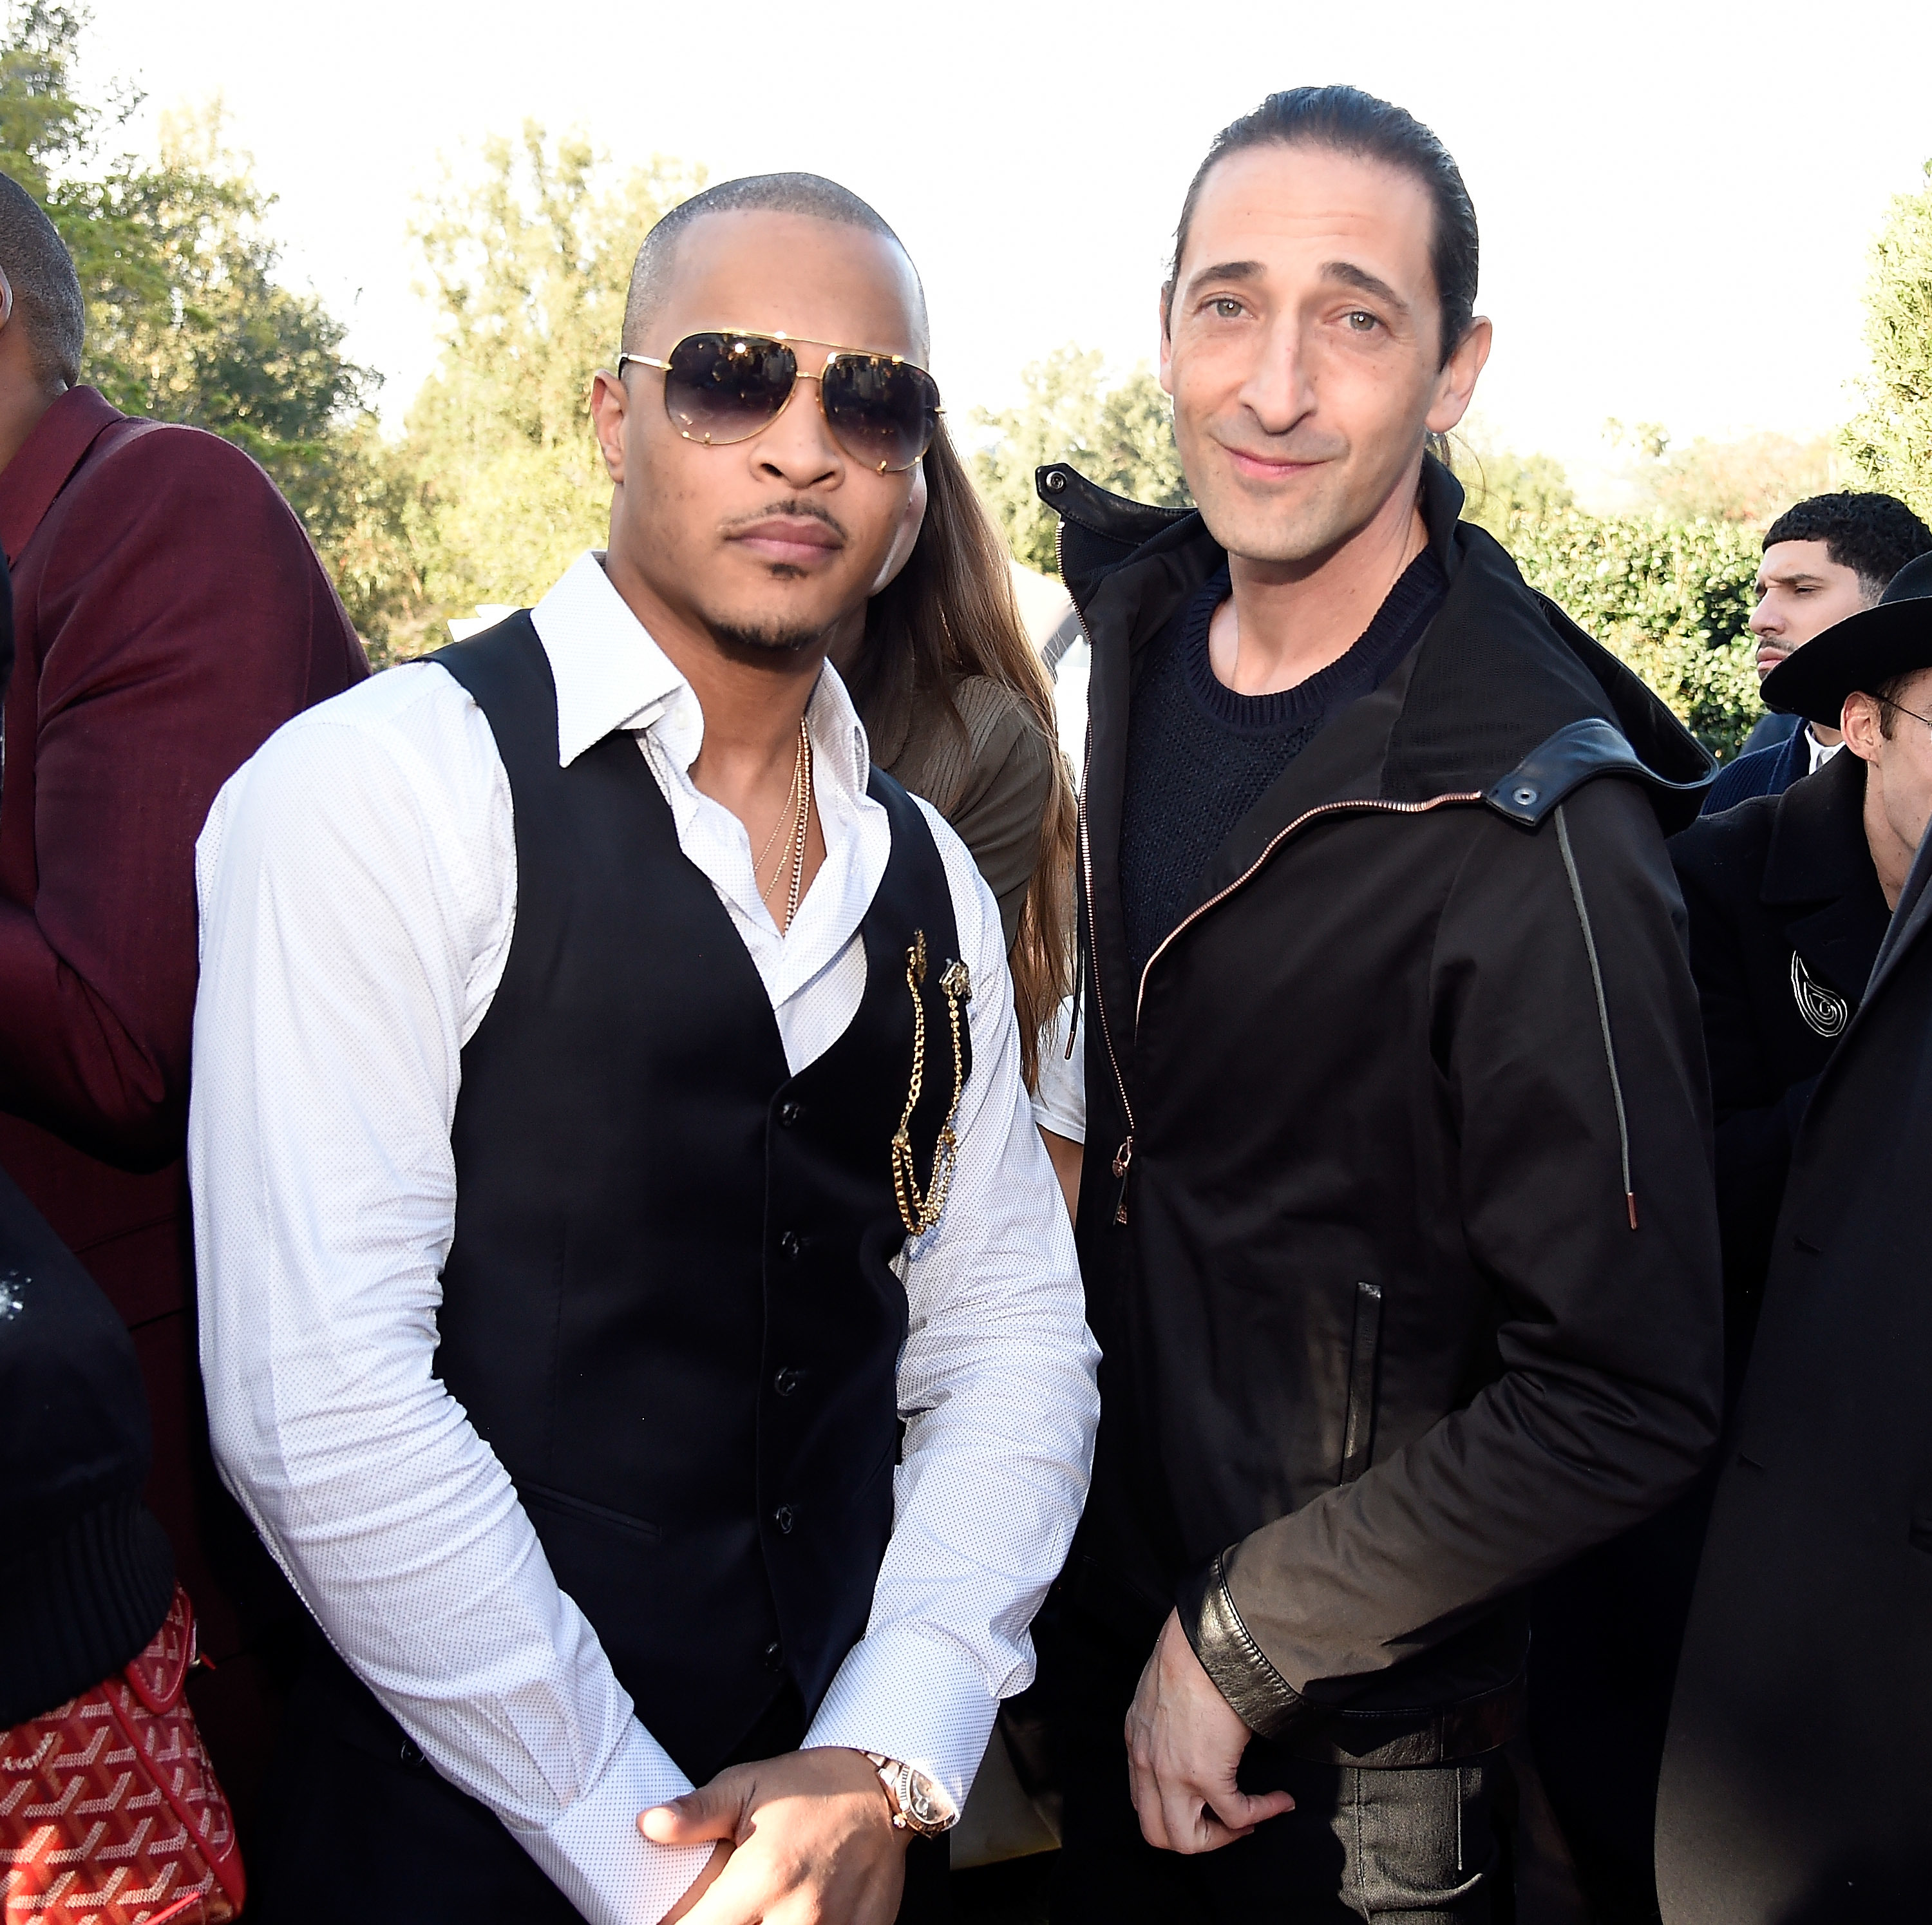 T.I. and Adrien Brody attend Roc Nation's Pre Grammys Brunch in Los Angeles on Feb. 11, 2017.